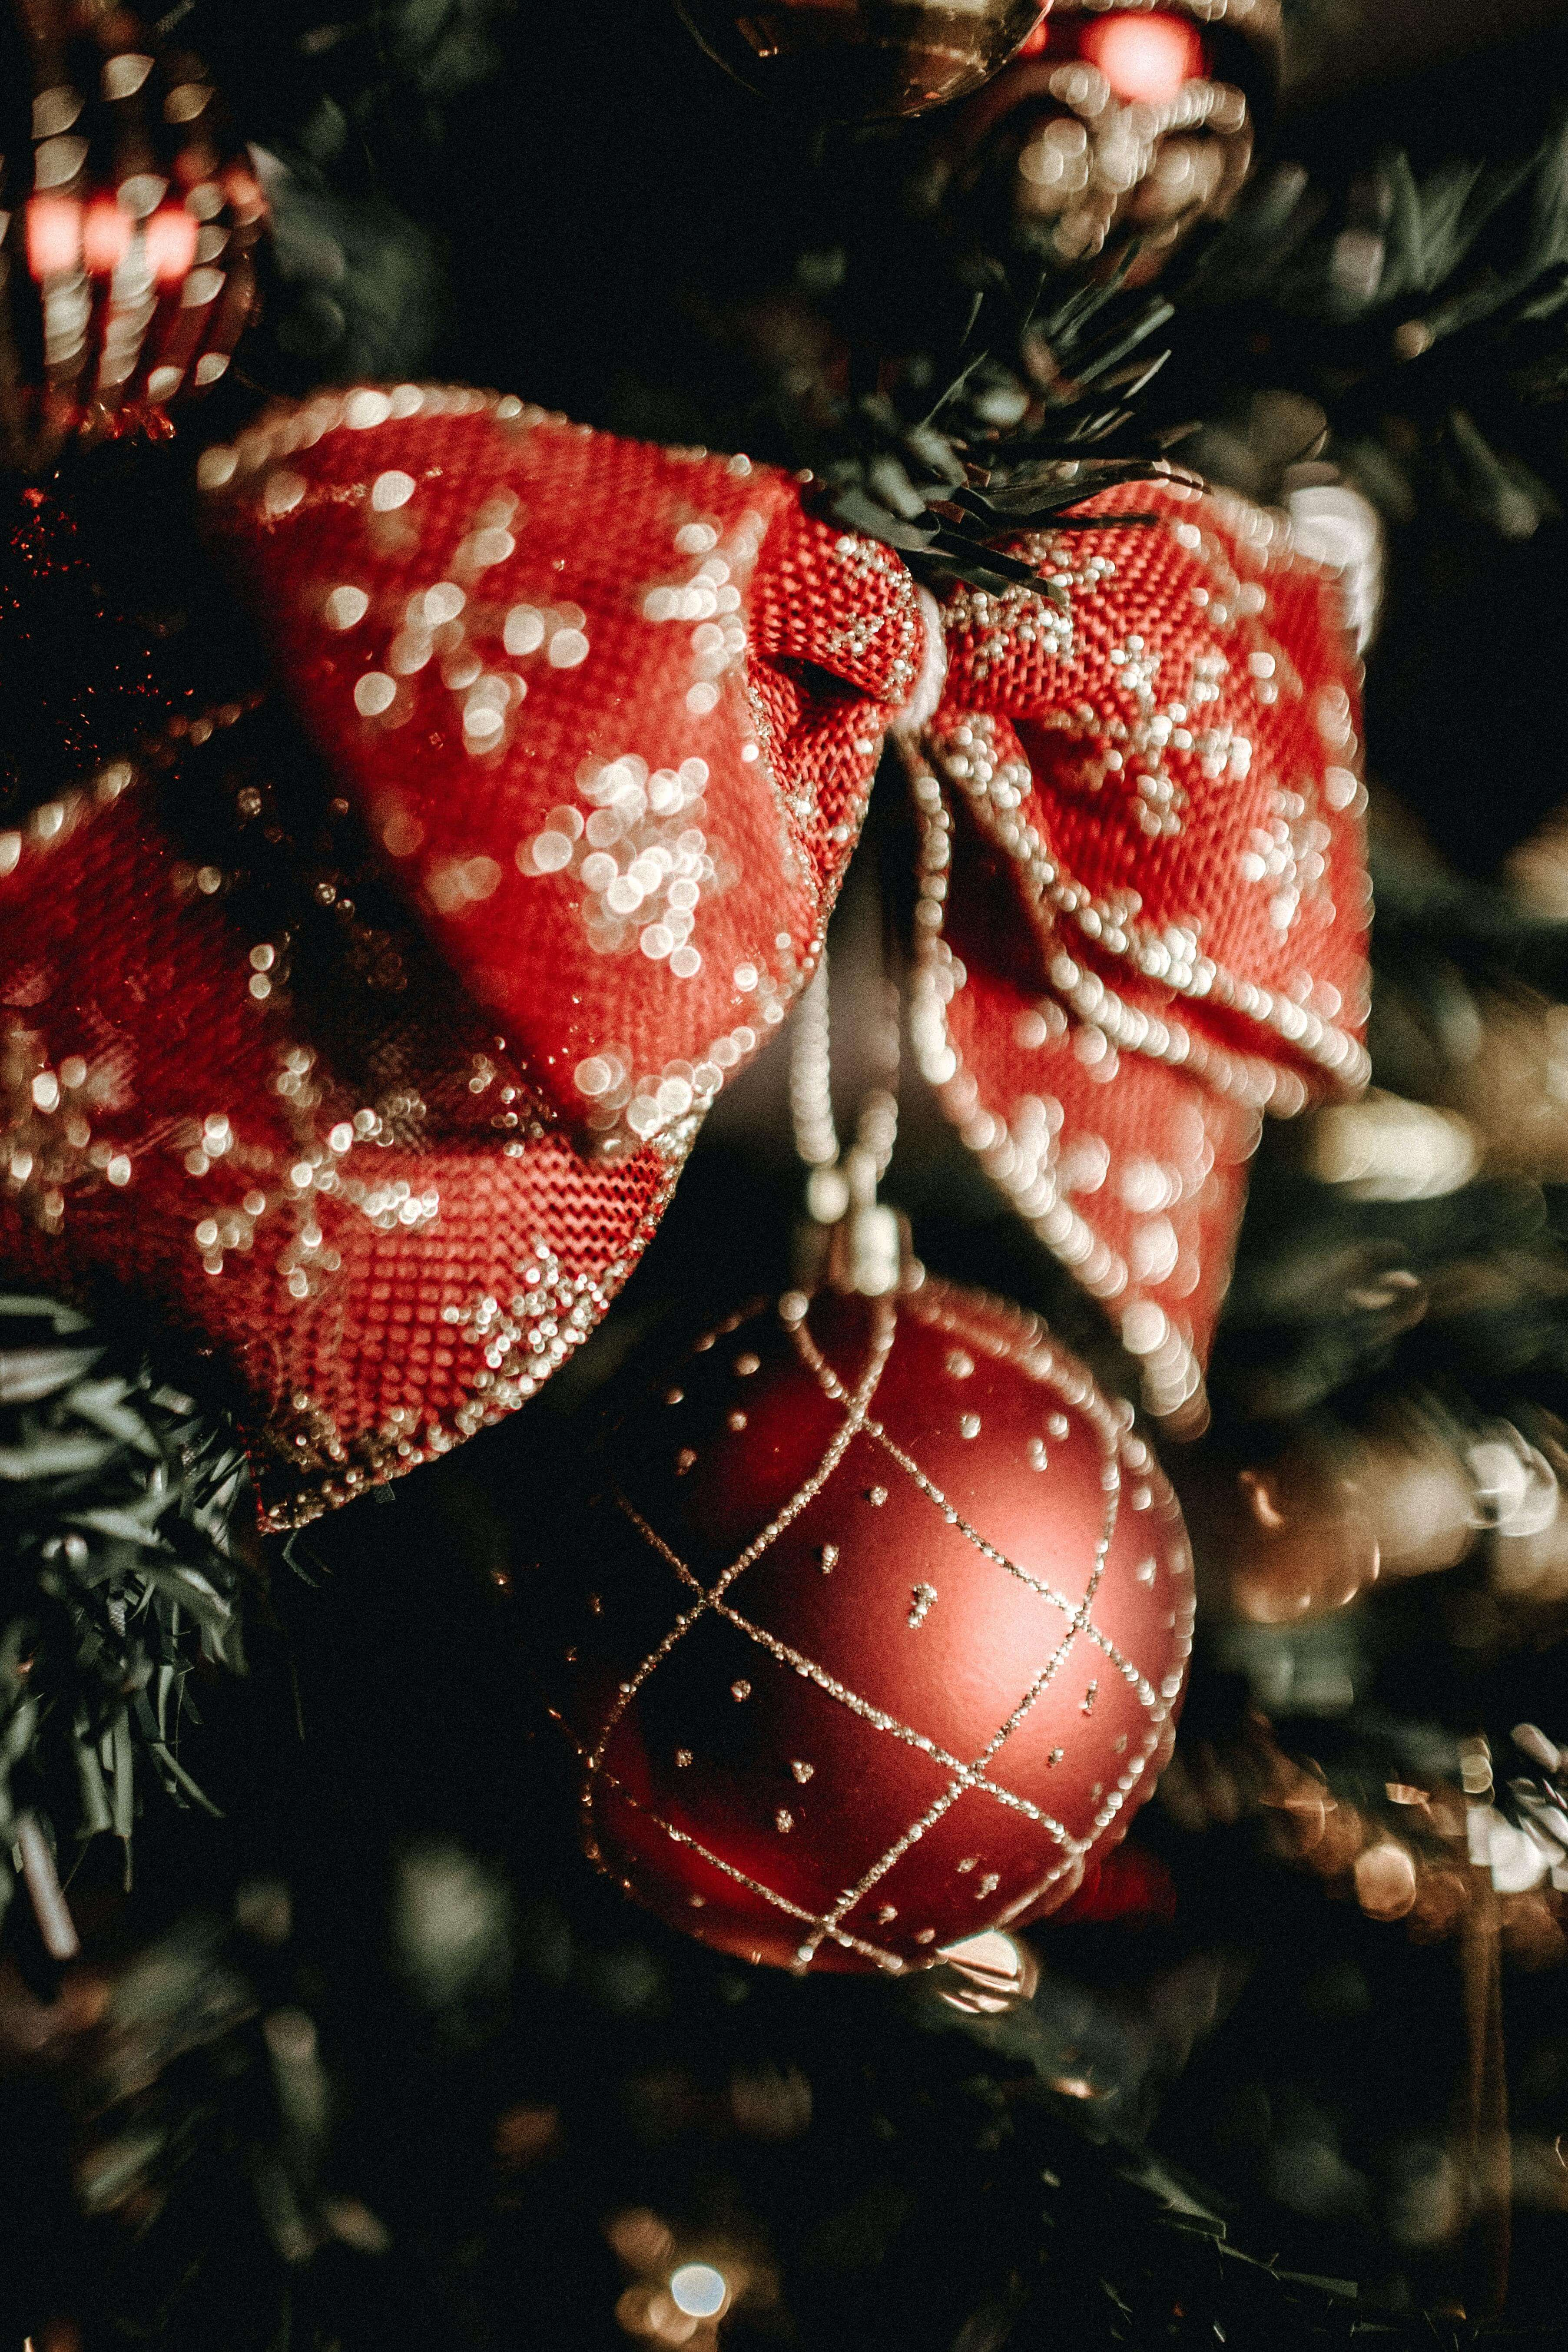 A close-up view of a red and white Christmas ornament and bow hanging on a tree